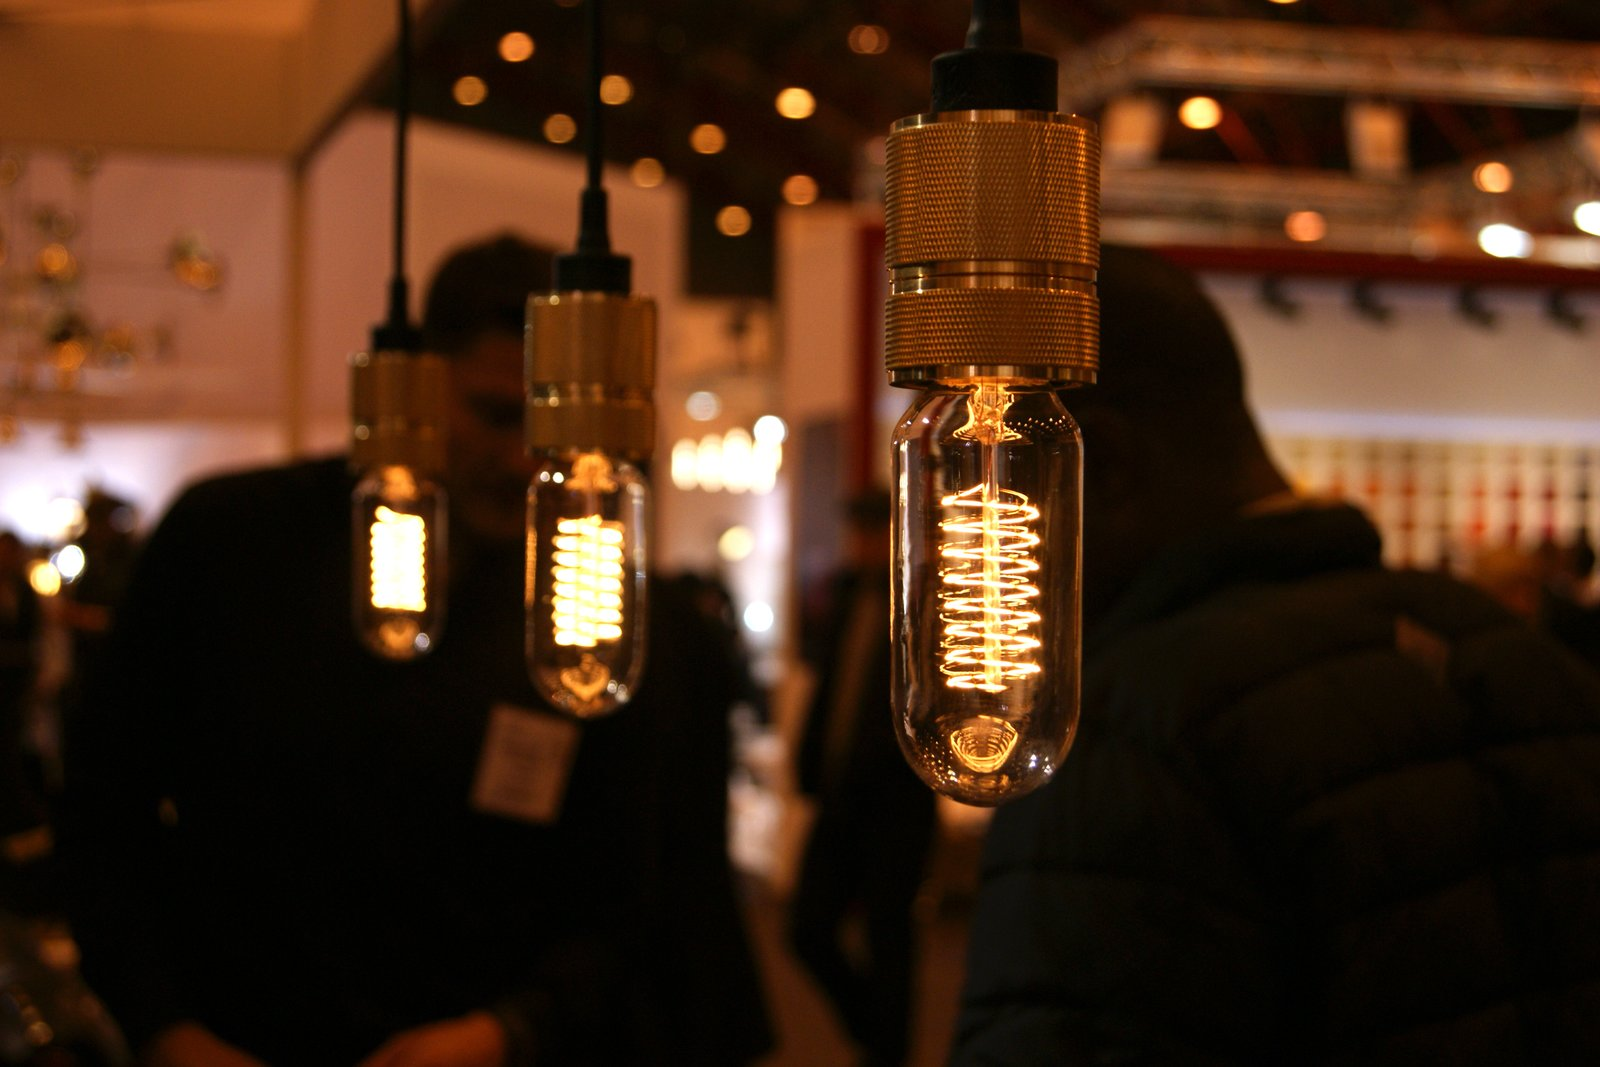 British brand Buster + Punch showcased a line of beautiful bulbs that replicate the old Edison filaments. Designed to be exposed, the bulbs are available in spiral and teardrop shapes and look particularly good when teamed with Vitamin's lamps (previous slide).  Key Trends from 2013 London Design Festival by Ali Morris